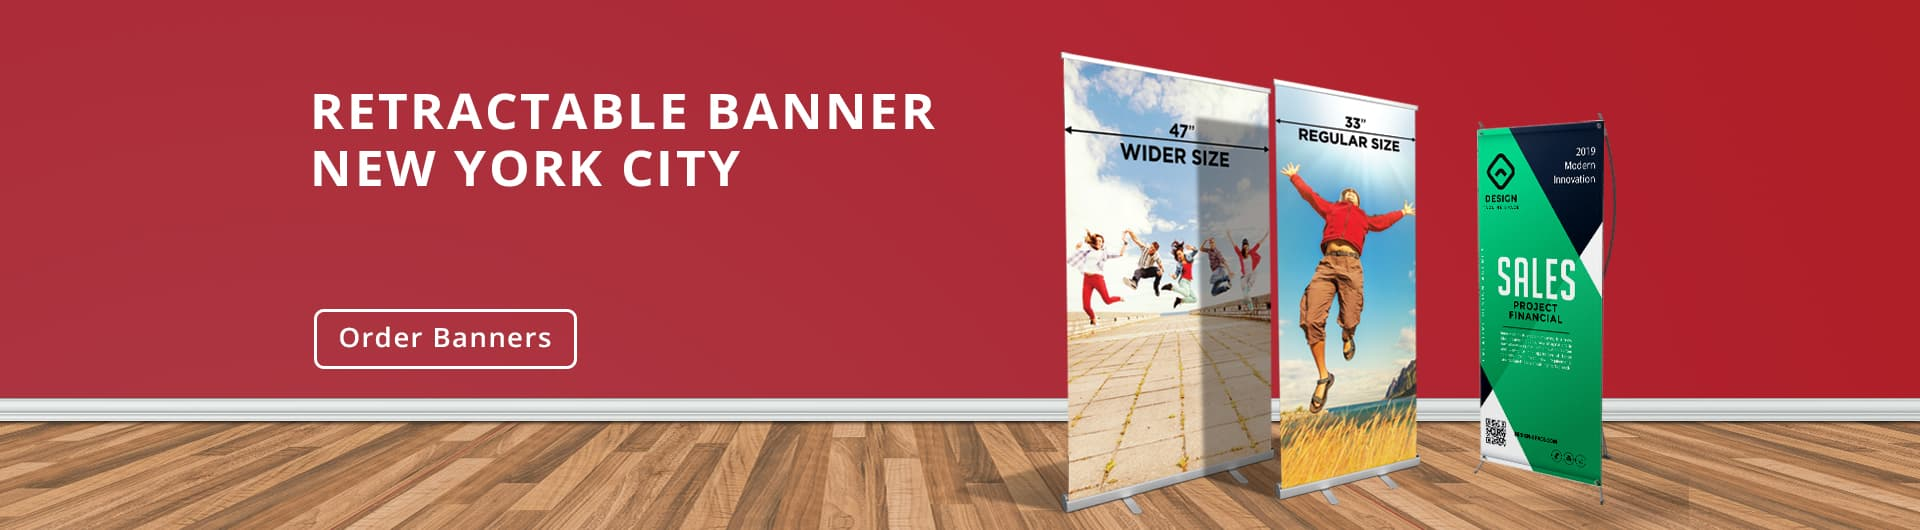 Retractable Banners NY